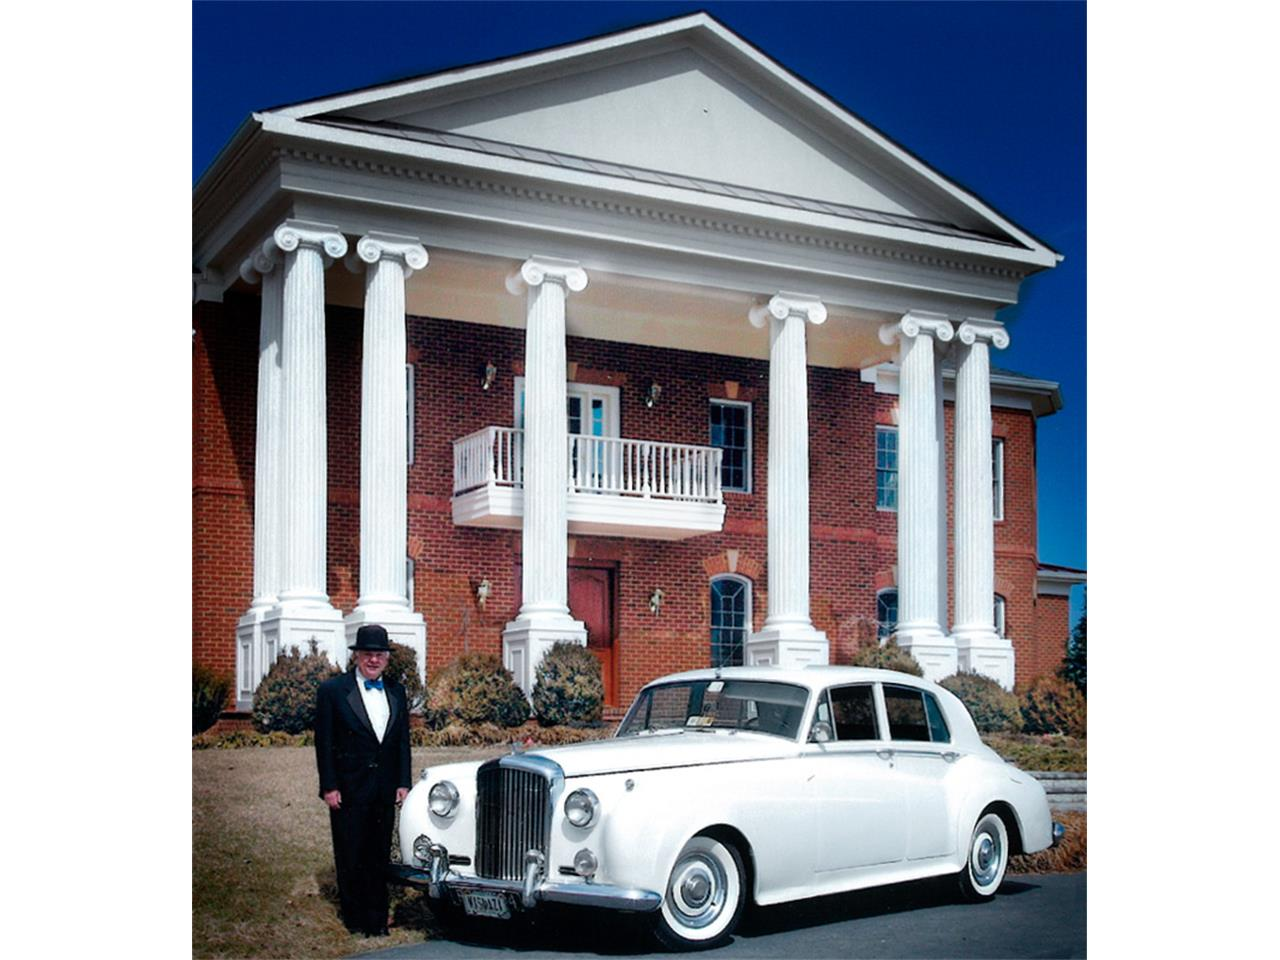 Large Picture of 1957 Bentley S1 located in Virginia - $28,500.00 Offered by a Private Seller - OCV6